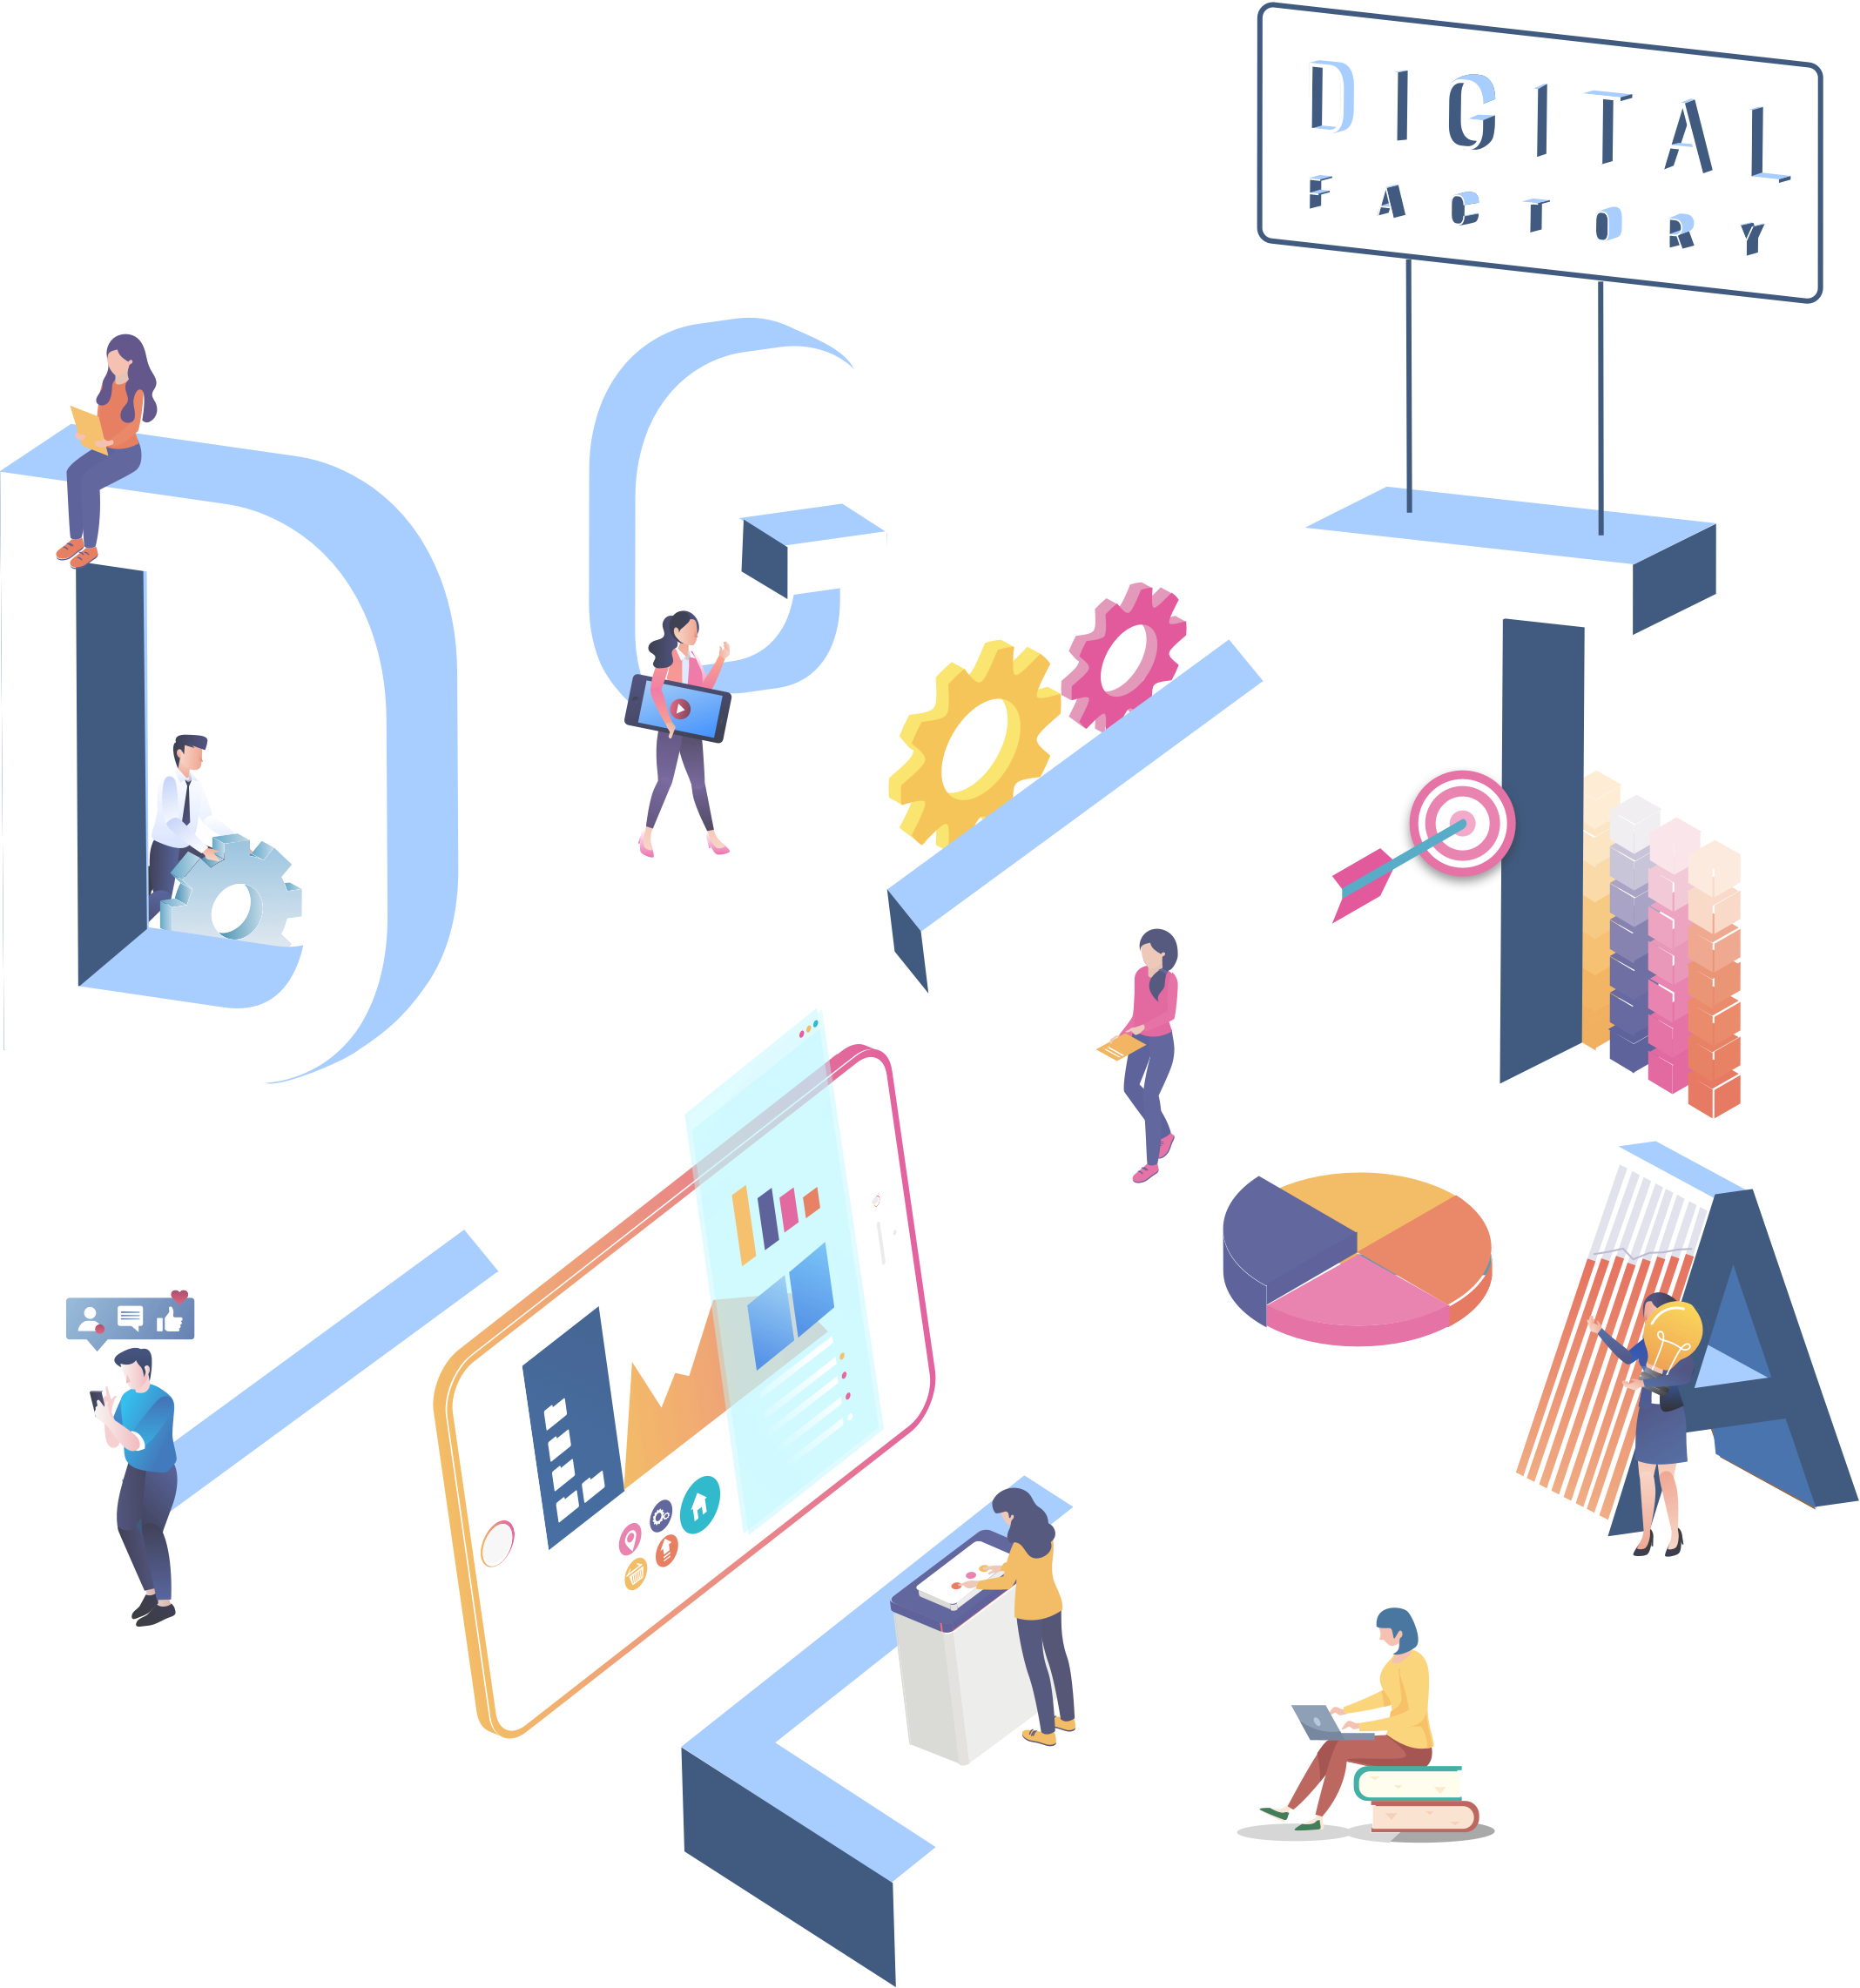 Digital Factory Digital Agency Cover page